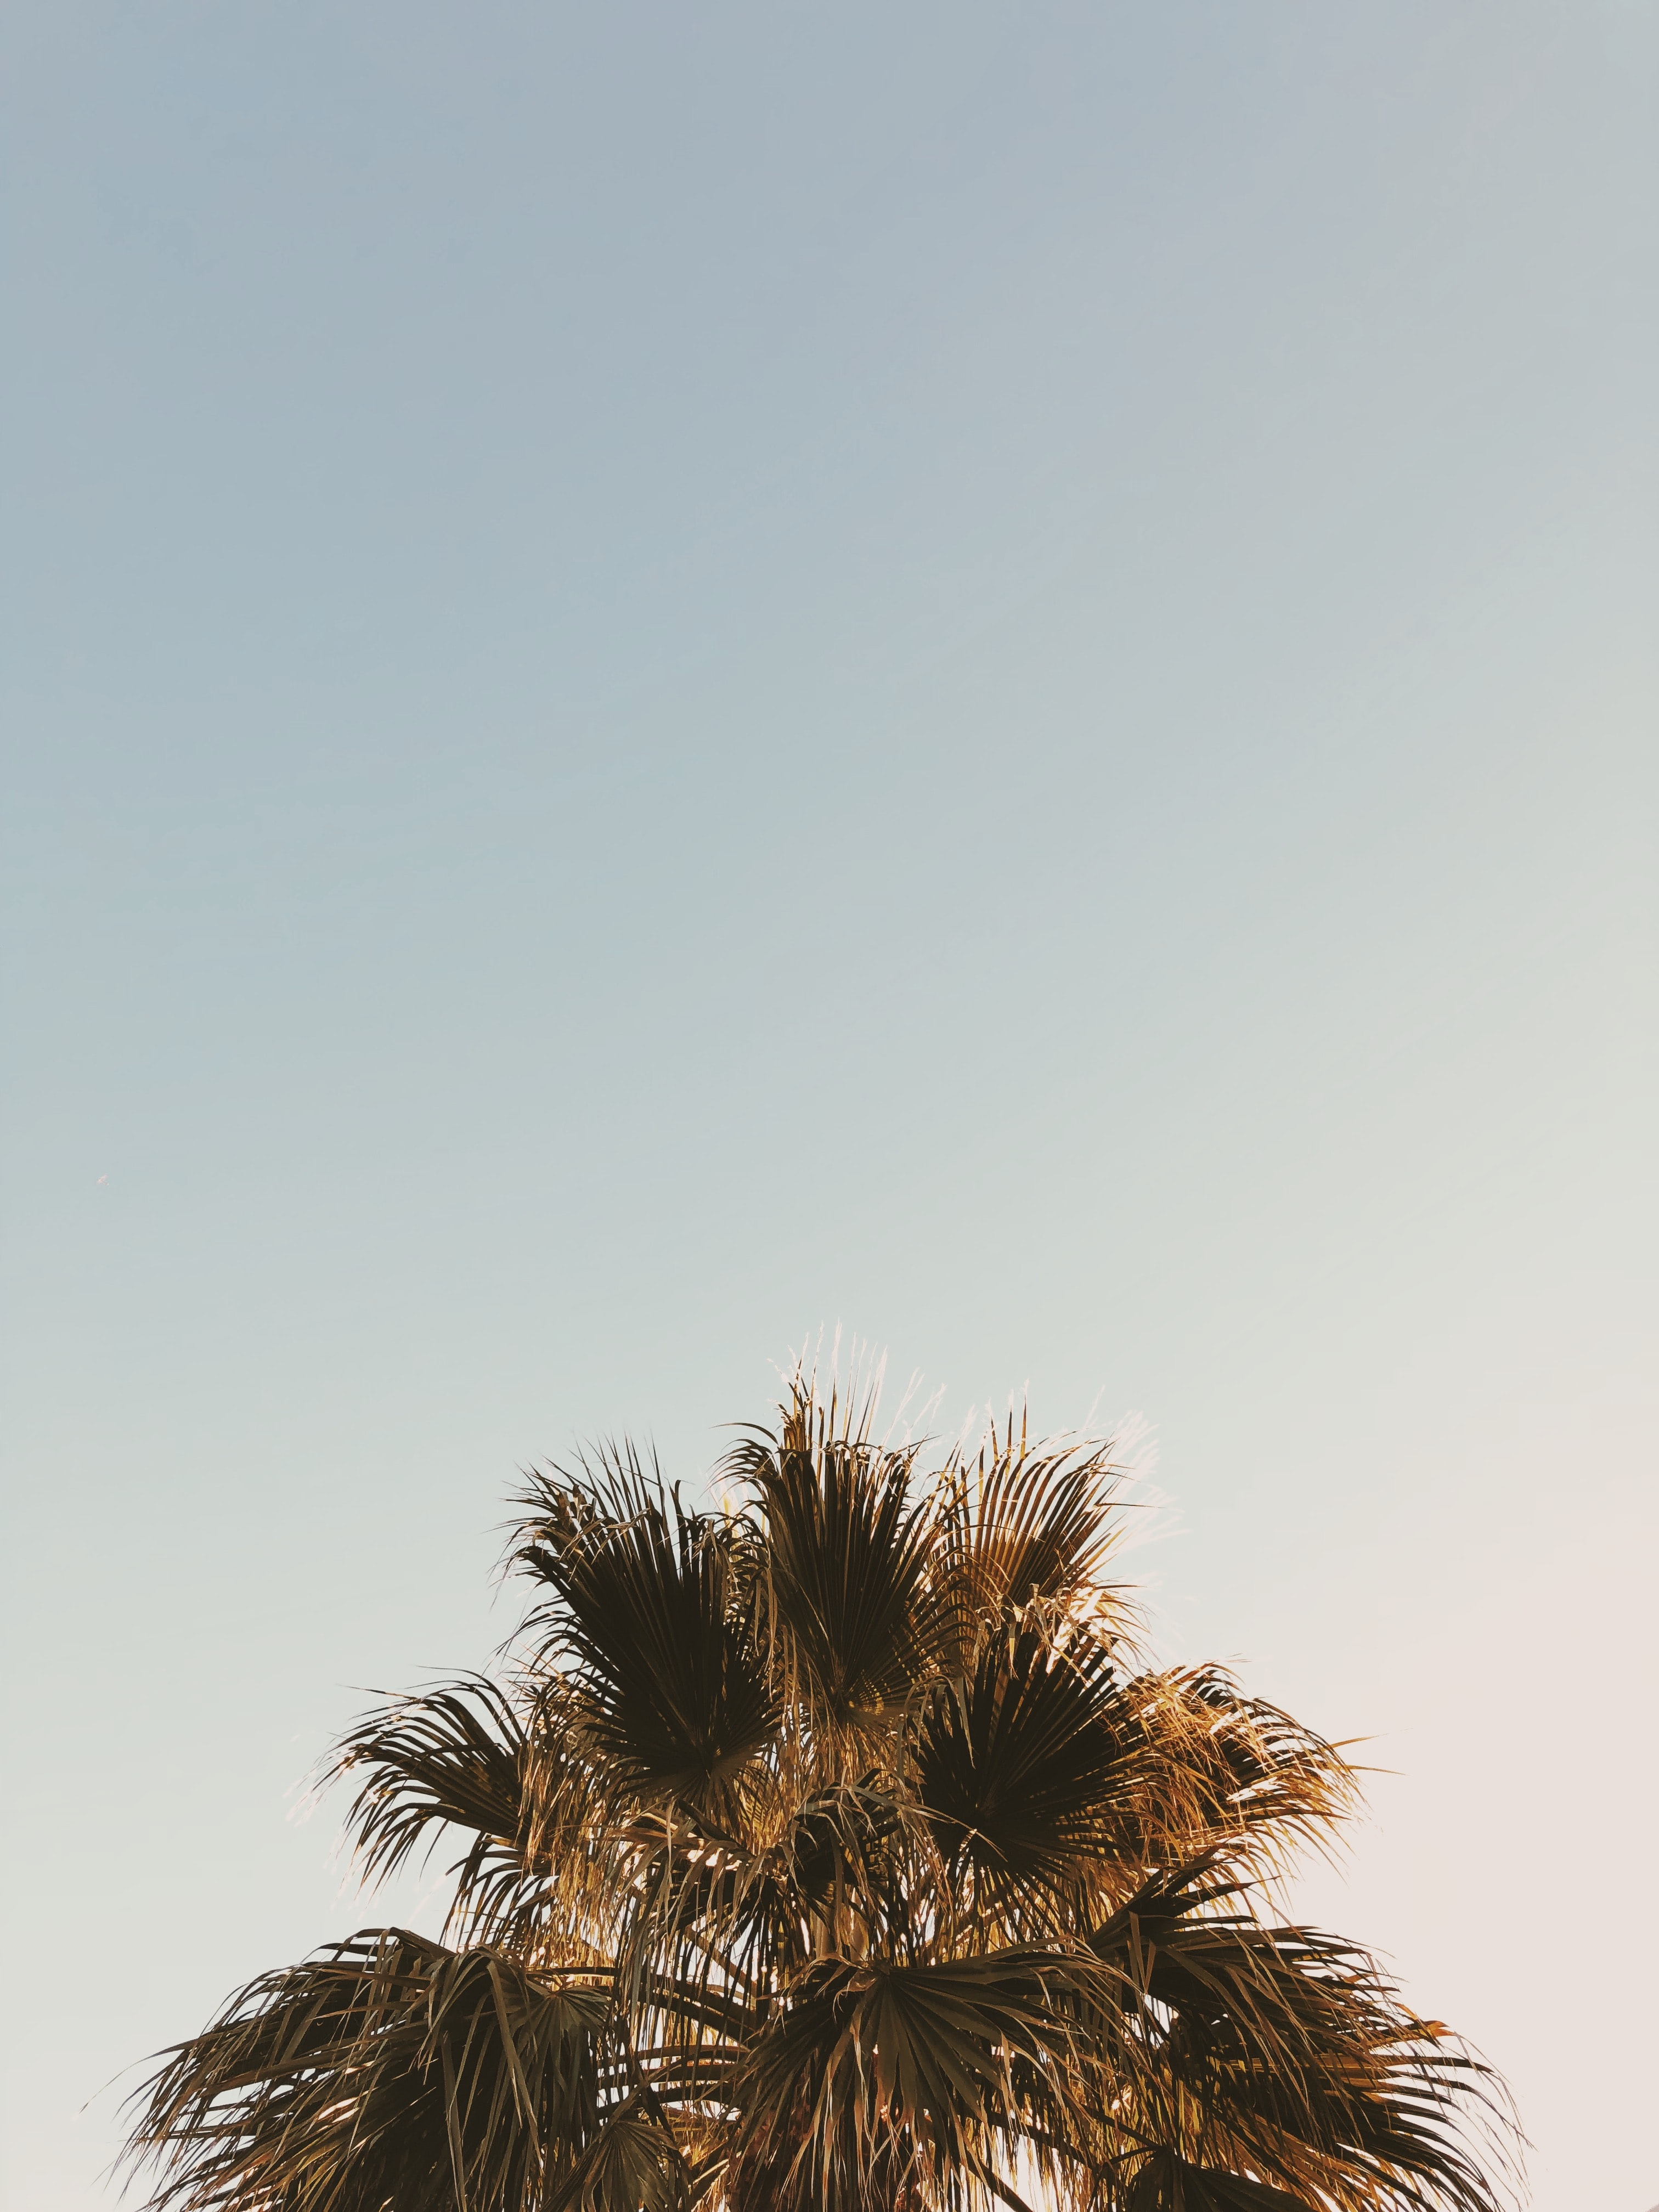 palm tree at daytime